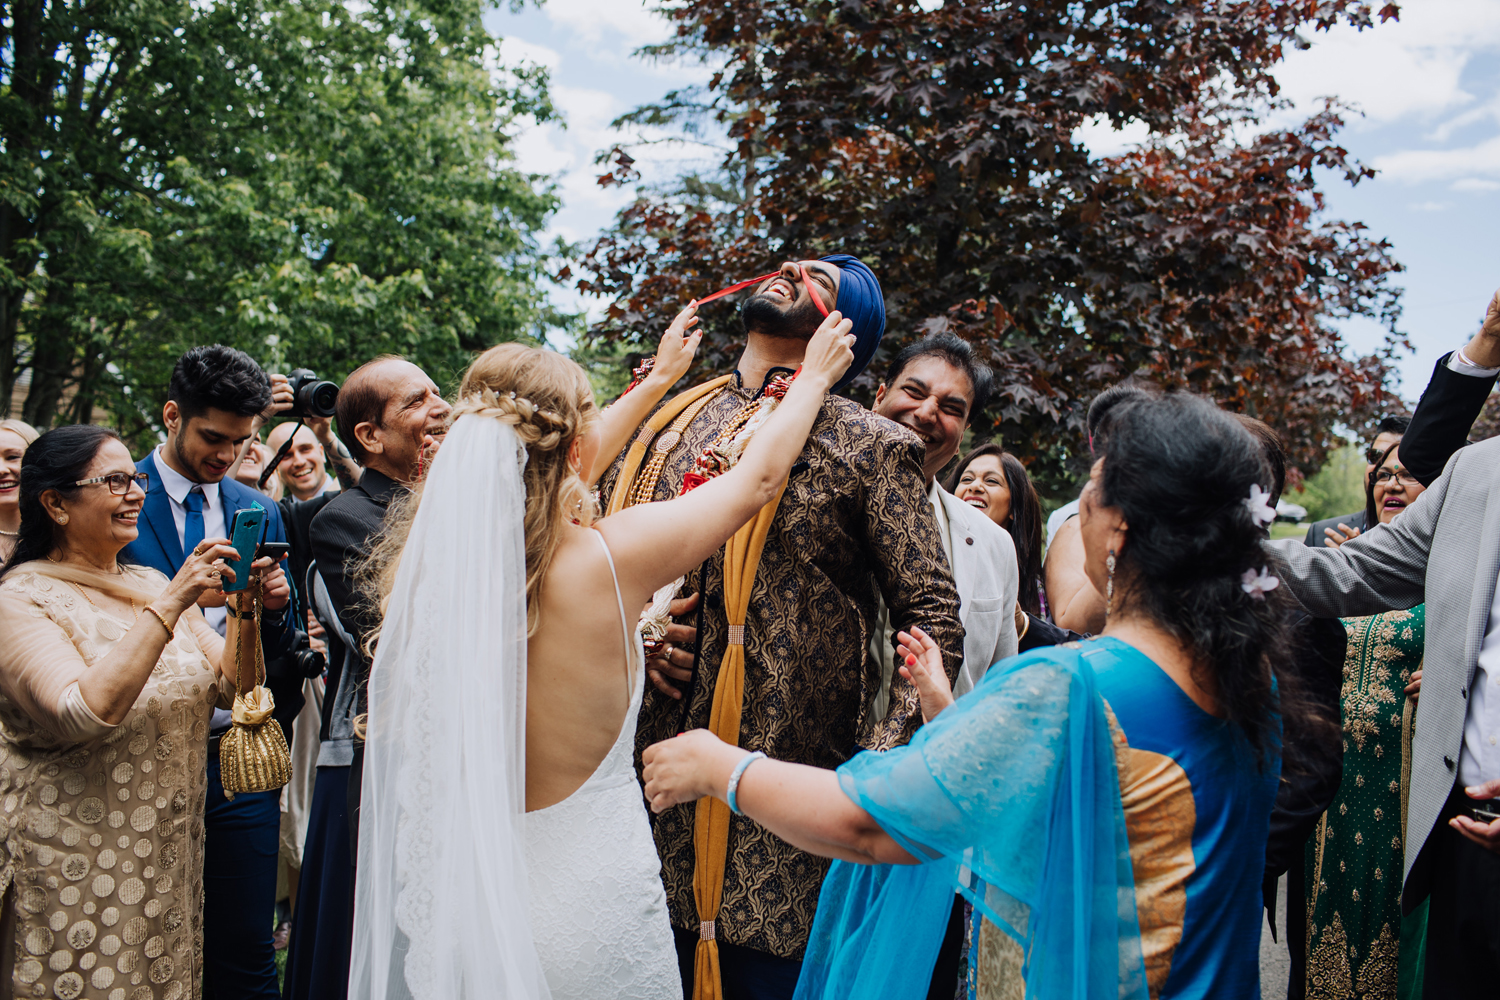 Sikh Indian Wedding Traditions. Games and dancing